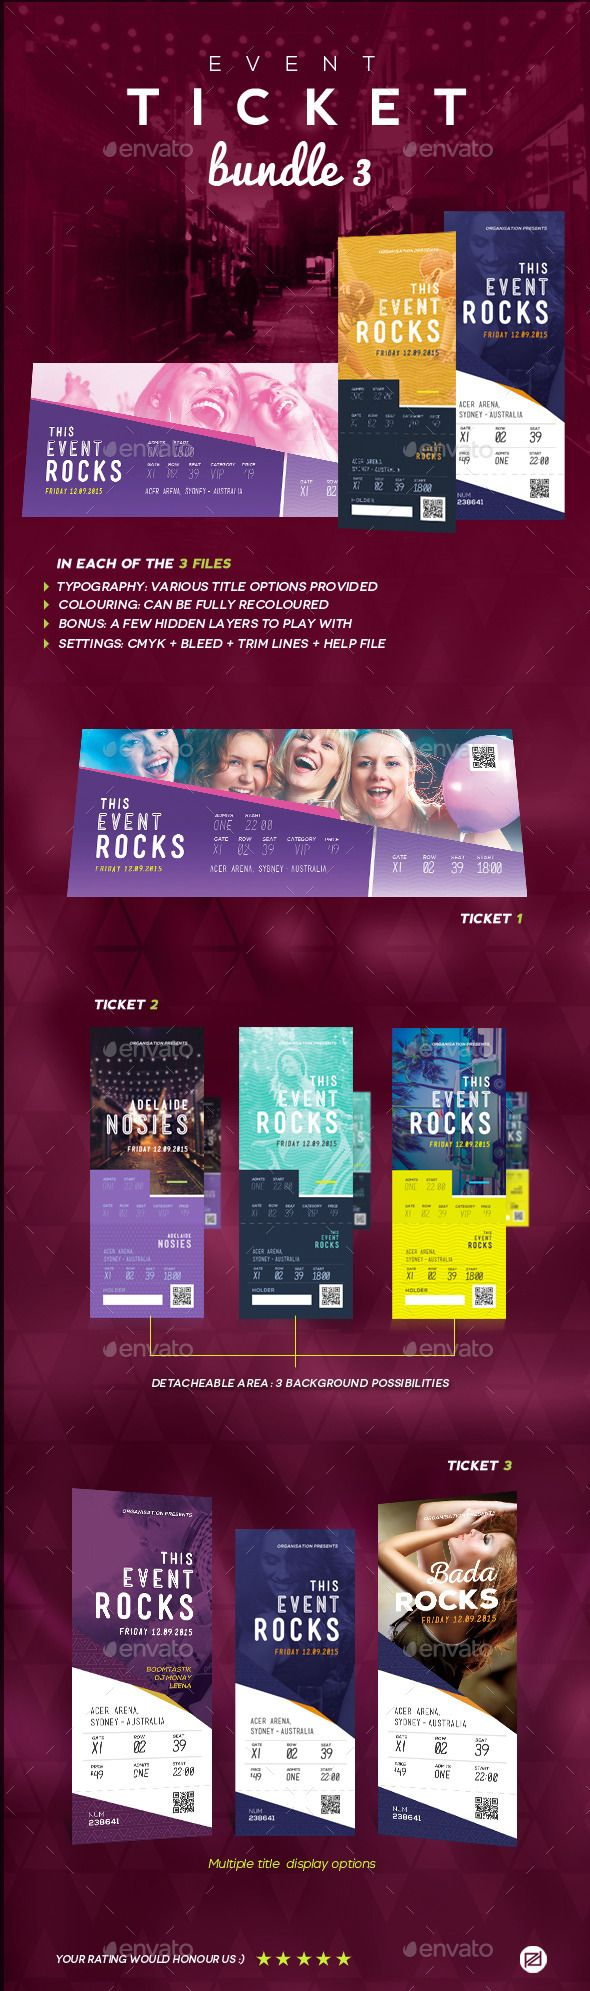 Event Tickets Bundle   Event Ticket Ticket Template And Print